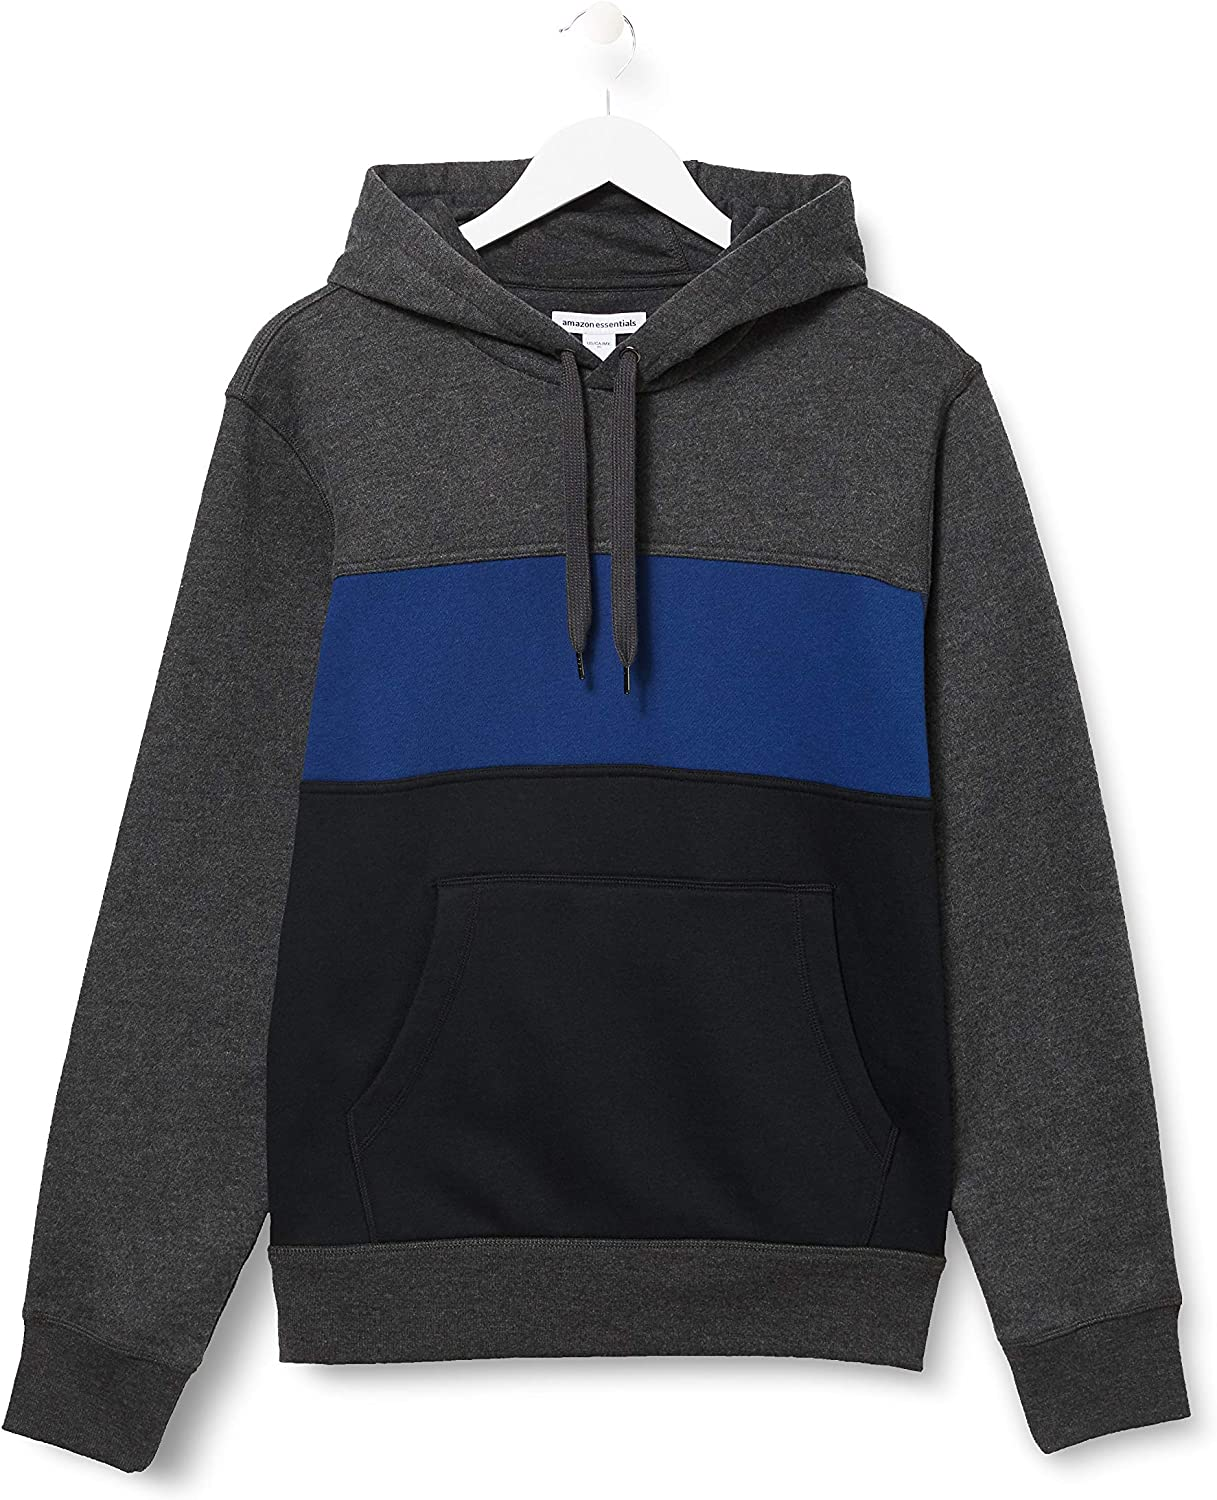 Essentials Mens Fleece Pullover Hooded Sweatshirt